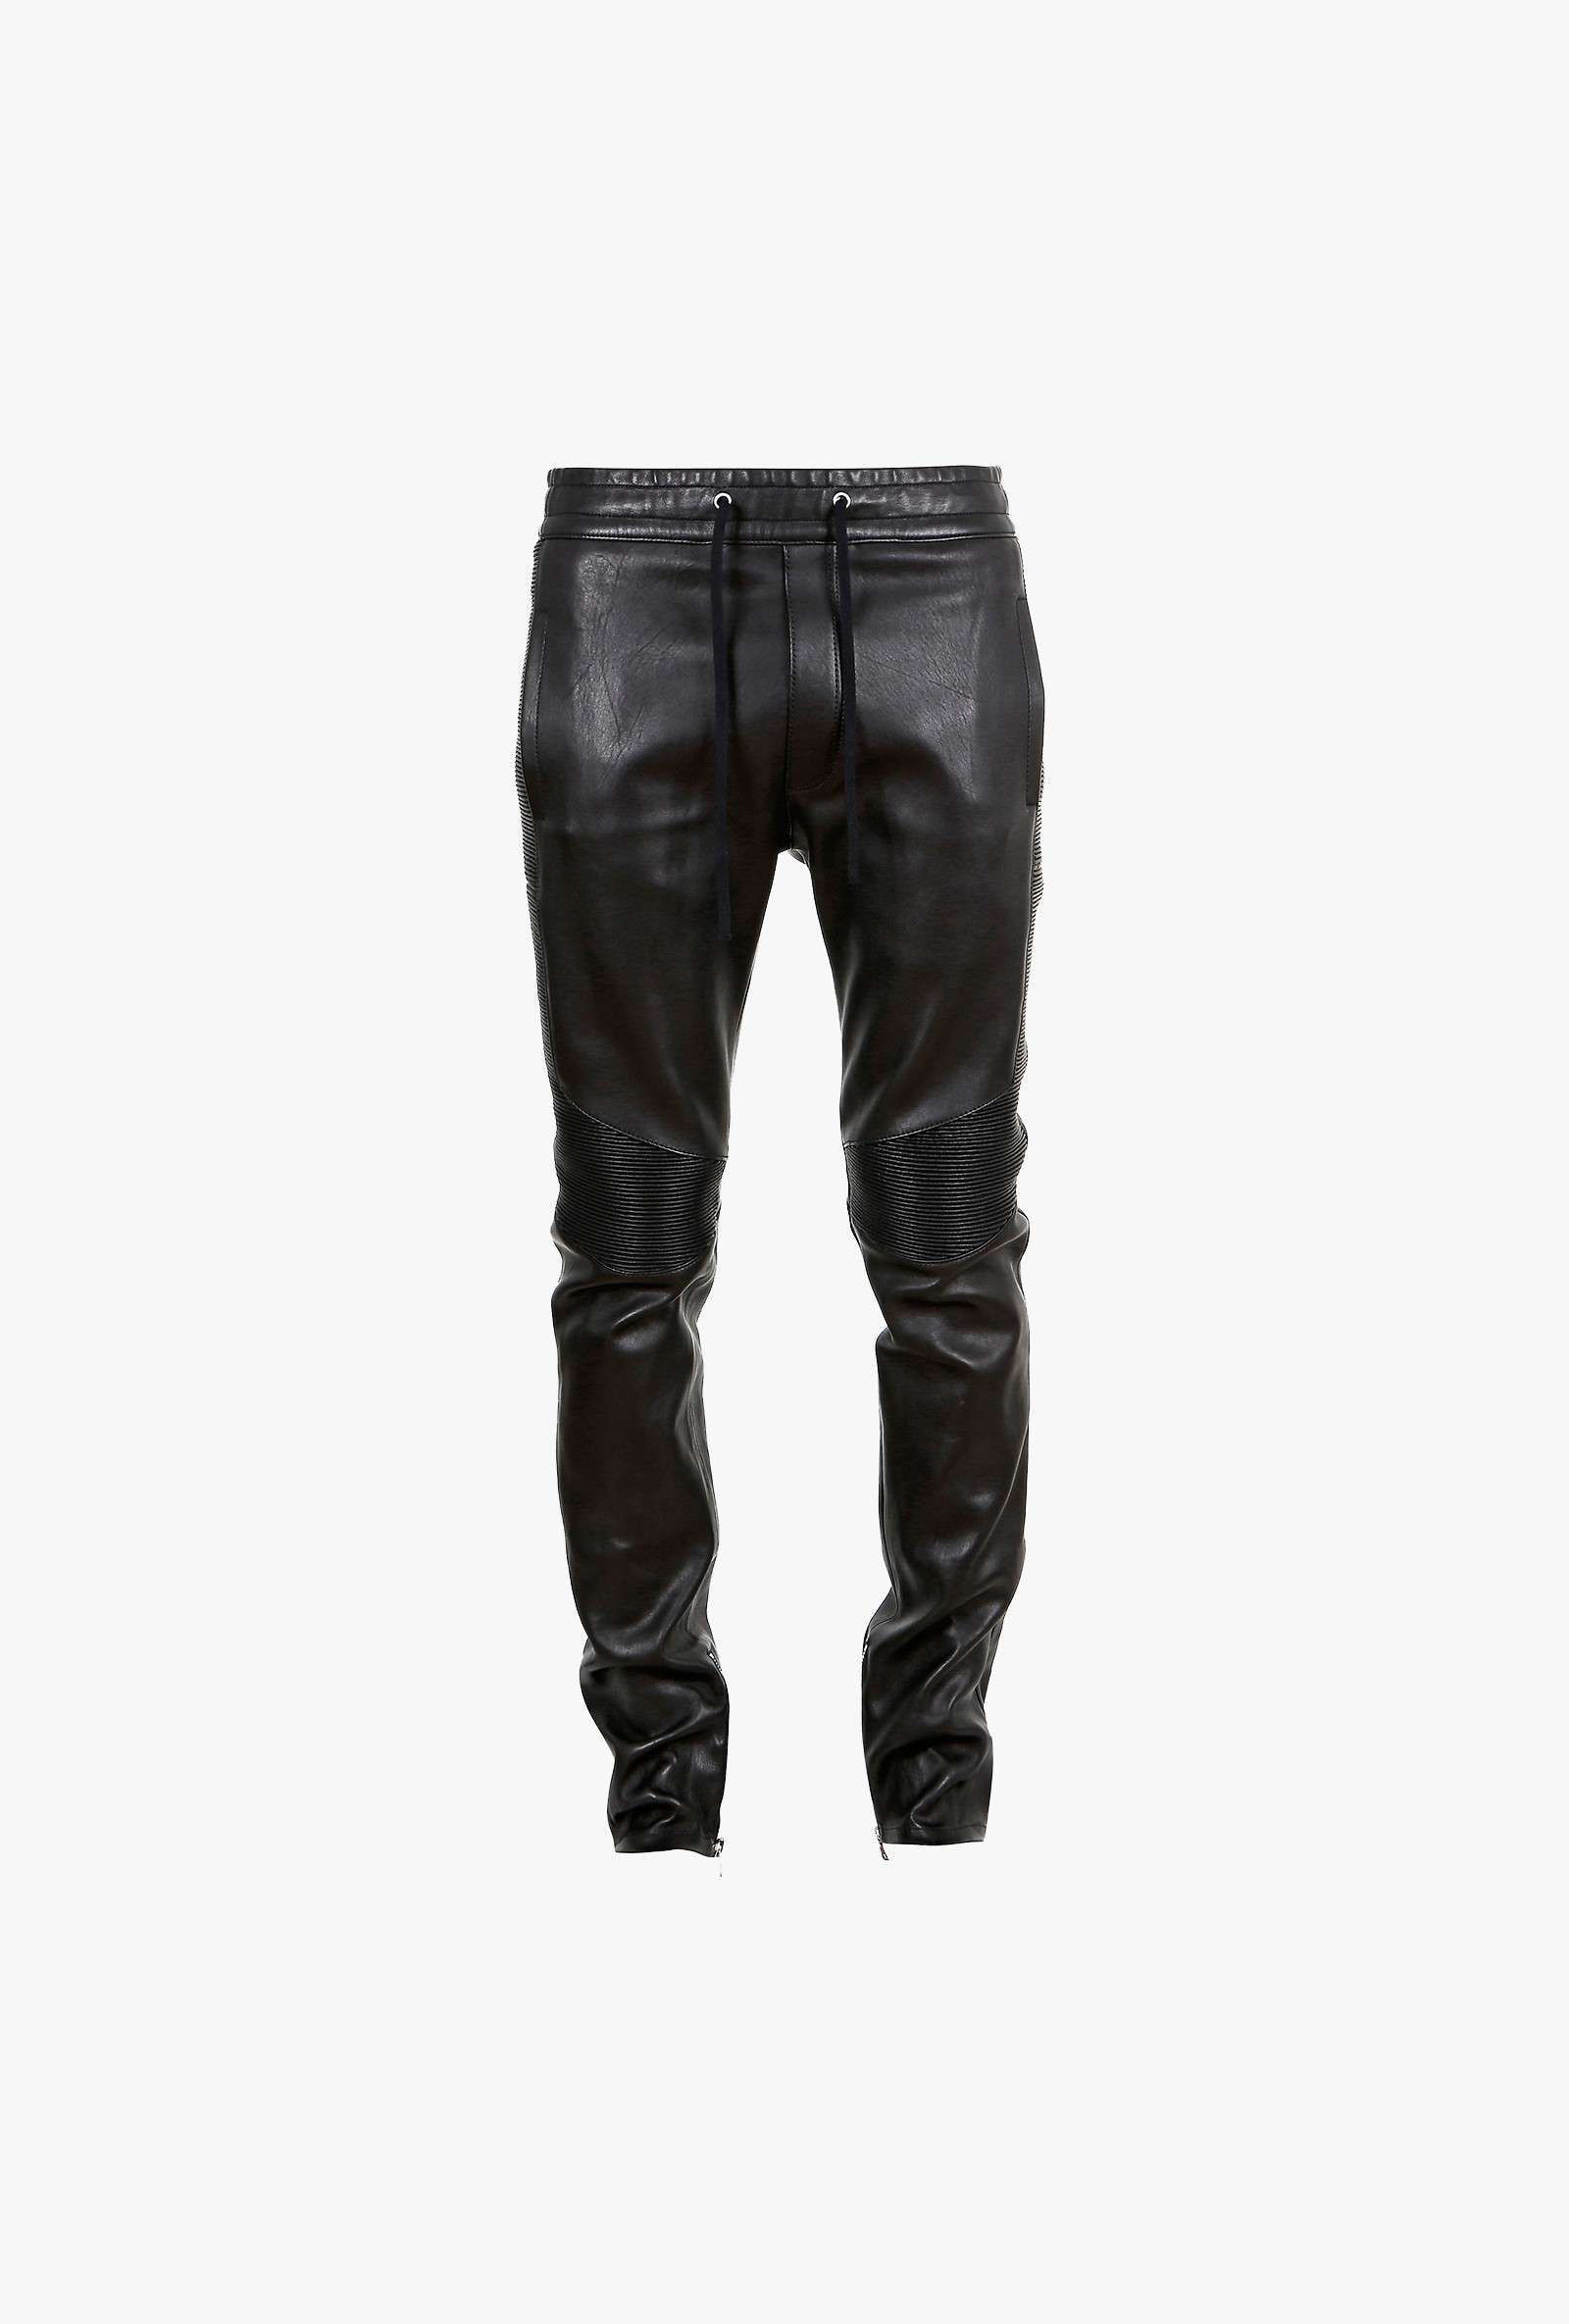 balmain pantalon de surv tement en cuir stretch style motard pantalons de jogging en cuir. Black Bedroom Furniture Sets. Home Design Ideas